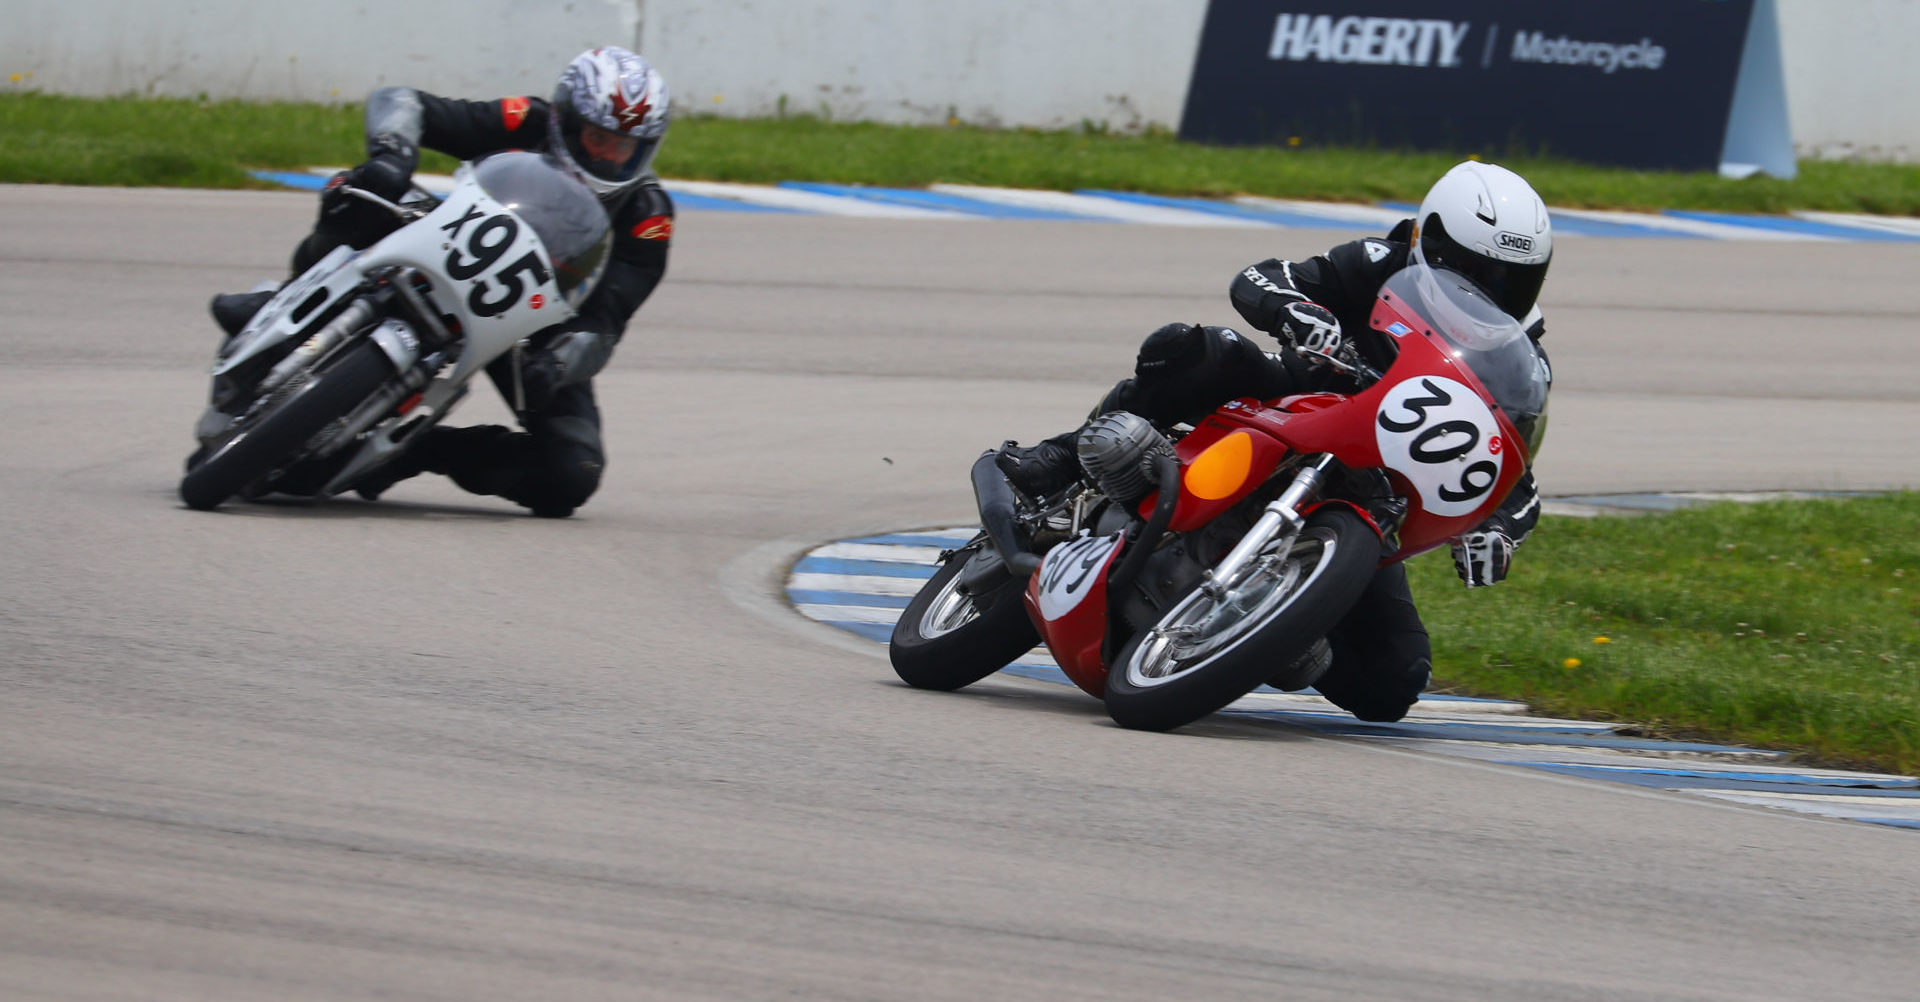 The AHRMA Vintage Cup Championship fight between Tim Joyce (309) and Andrew Mauk (x95) will be decided October 8-9 at Barber Motorsports Park. Photo courtesy AHRMA.